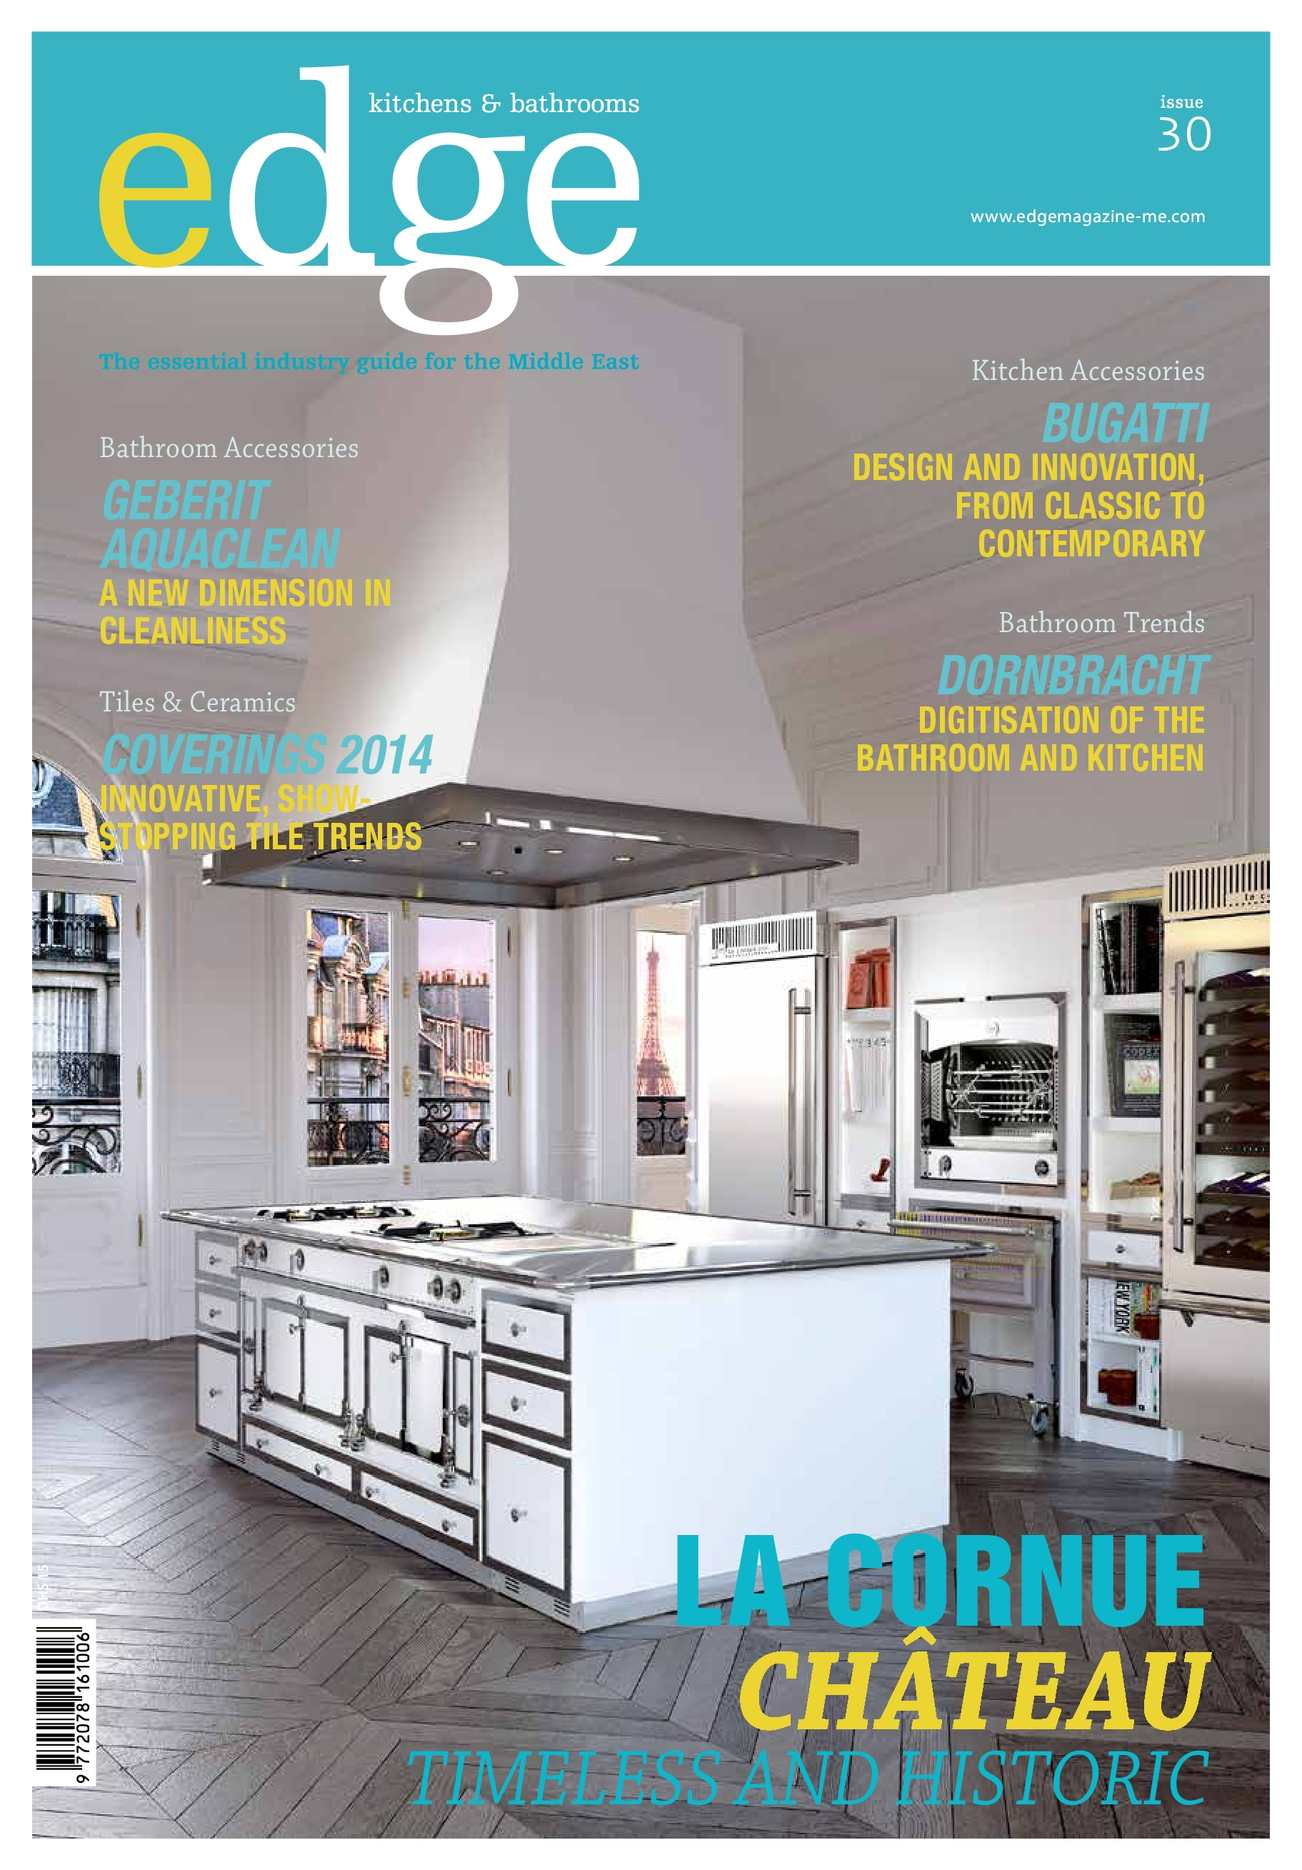 Bagno Design Bahrain Wll Calaméo Edge Magazine Issue 30